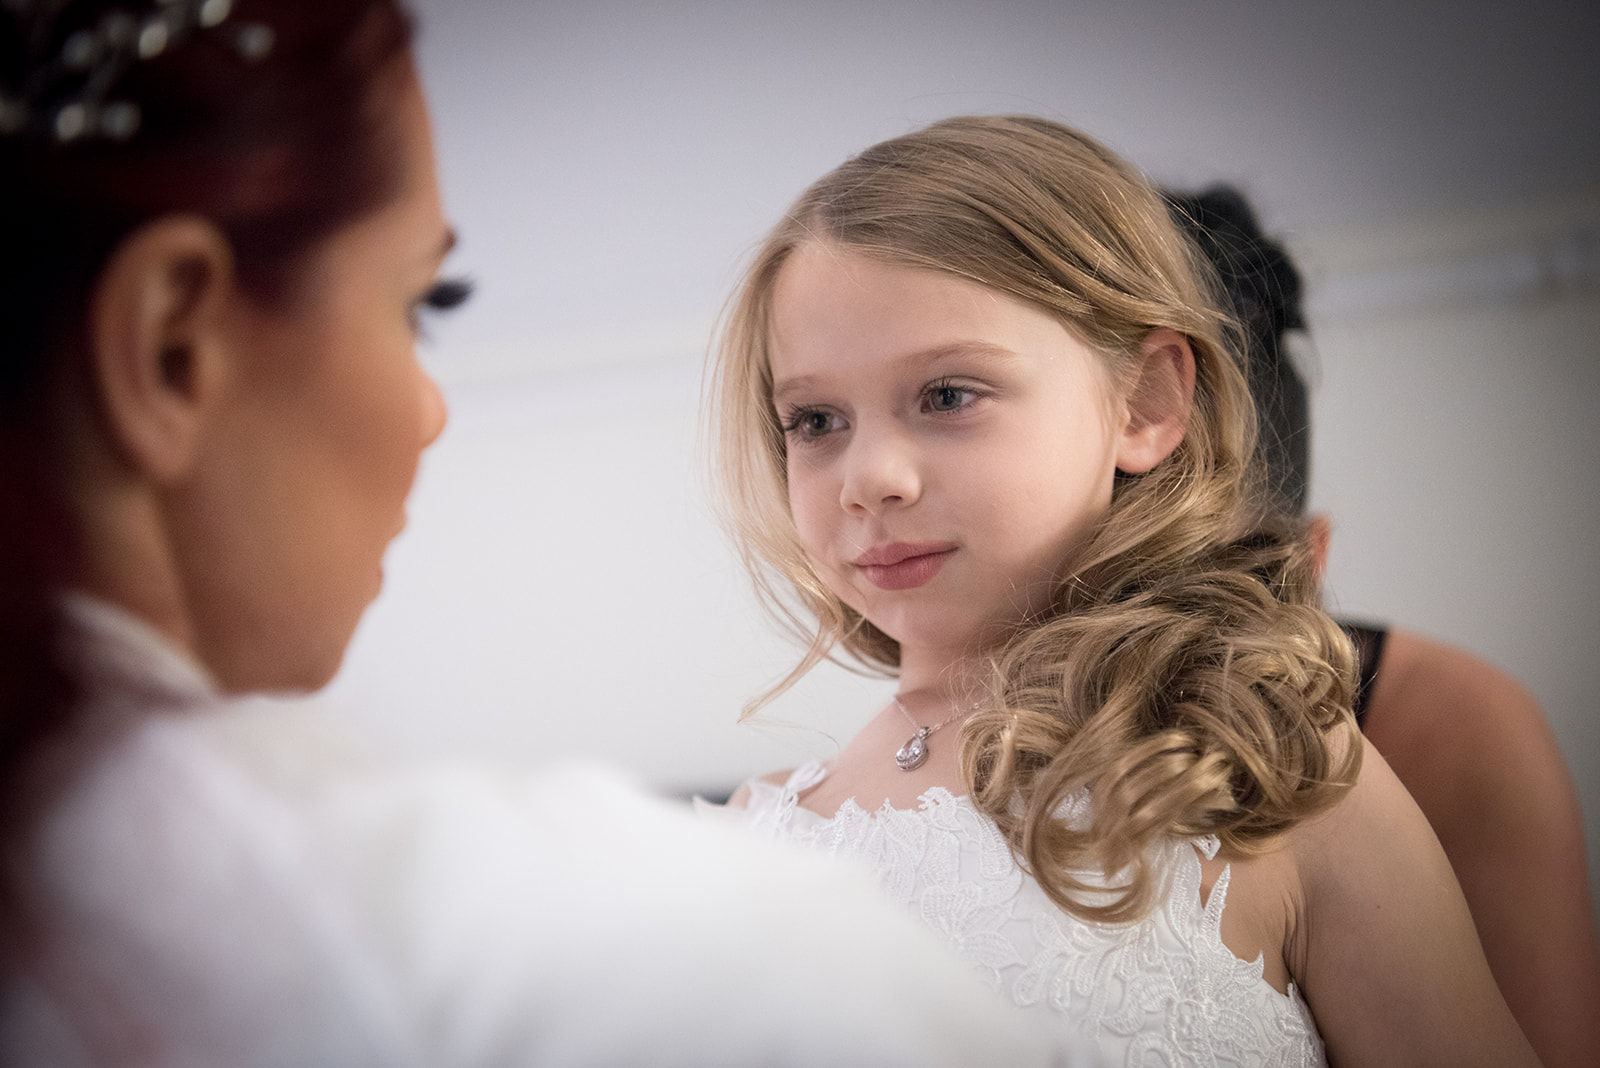 The bride's daughter is the flower girl and she is getting ready for her moment! - Pearl Weddings & Events